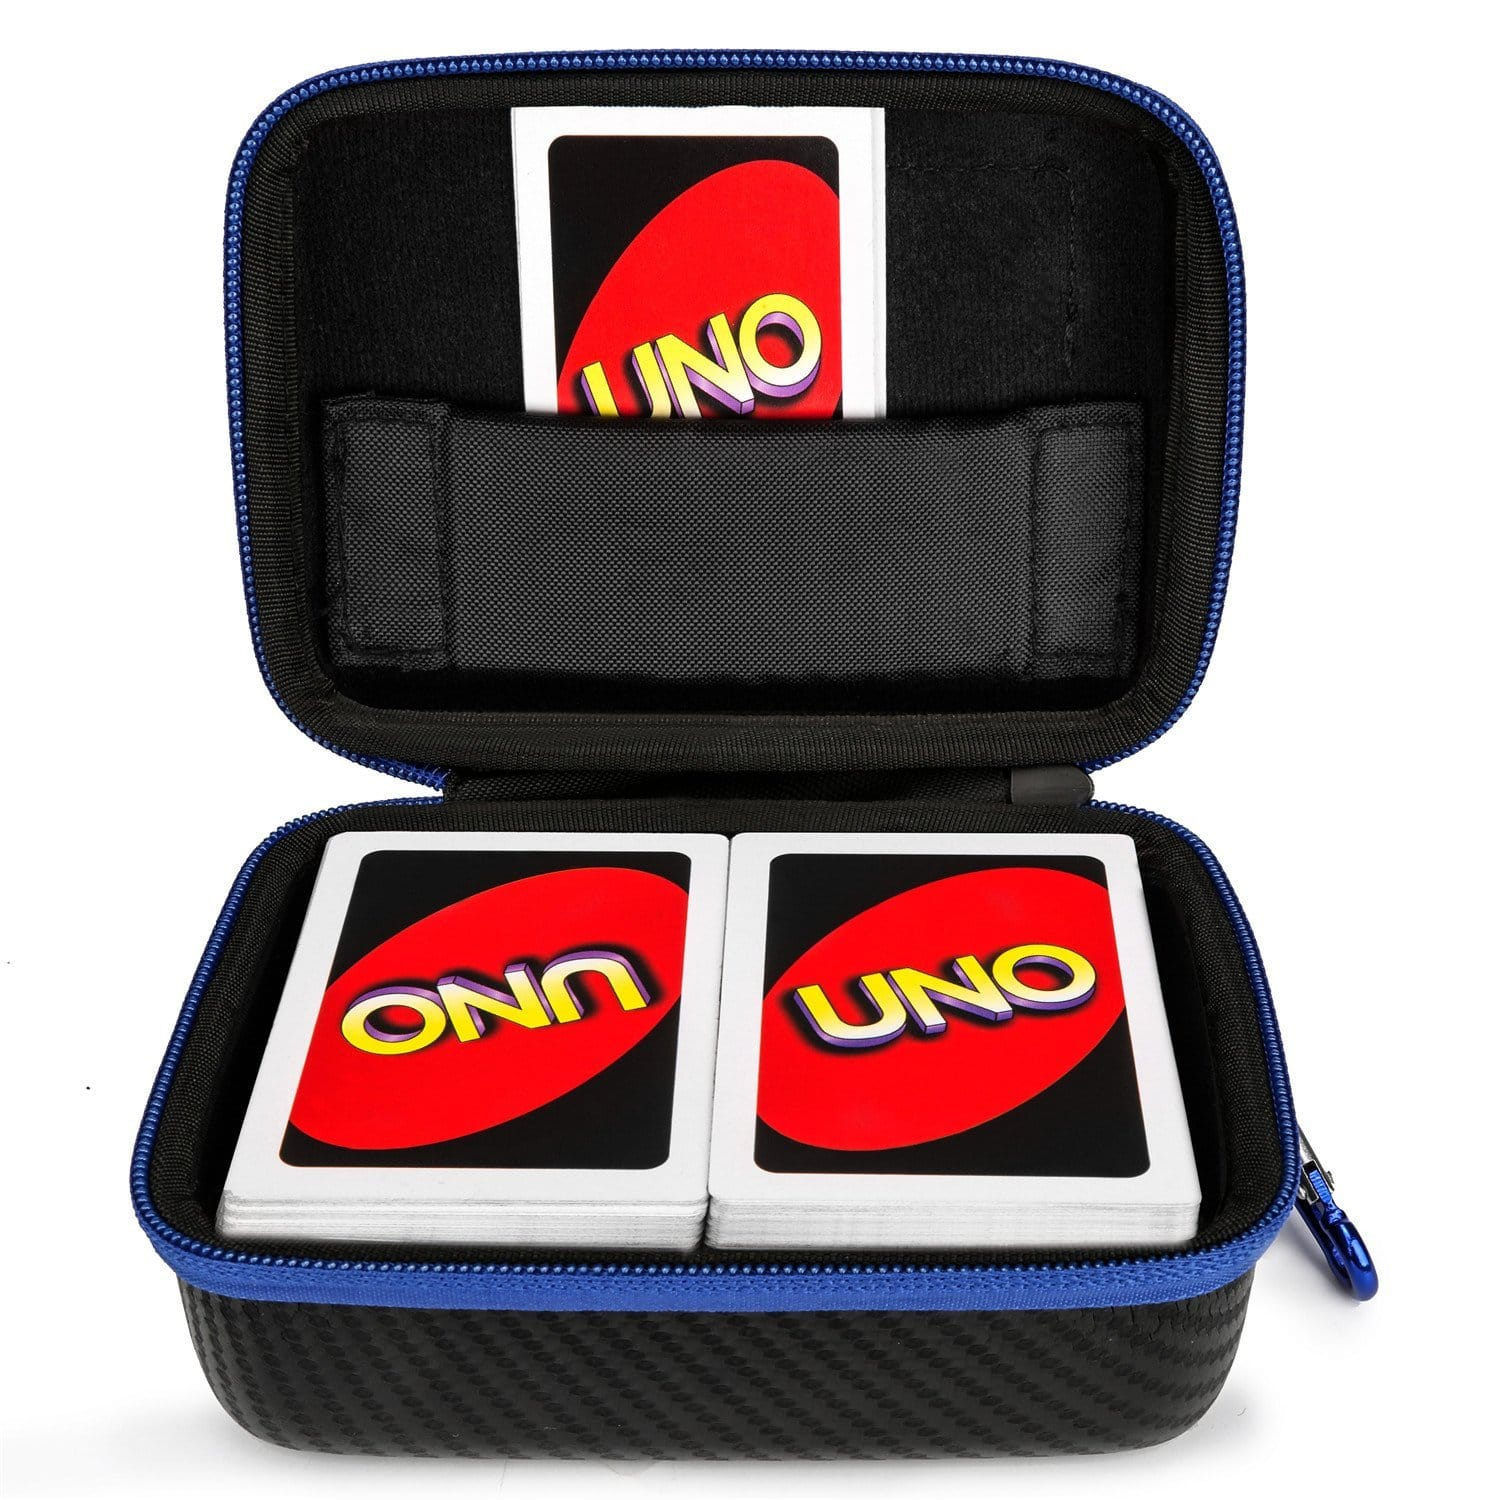 DOUBI Carrying Case for UNO Card Game - fits up to 400 cards on sale for $6.99